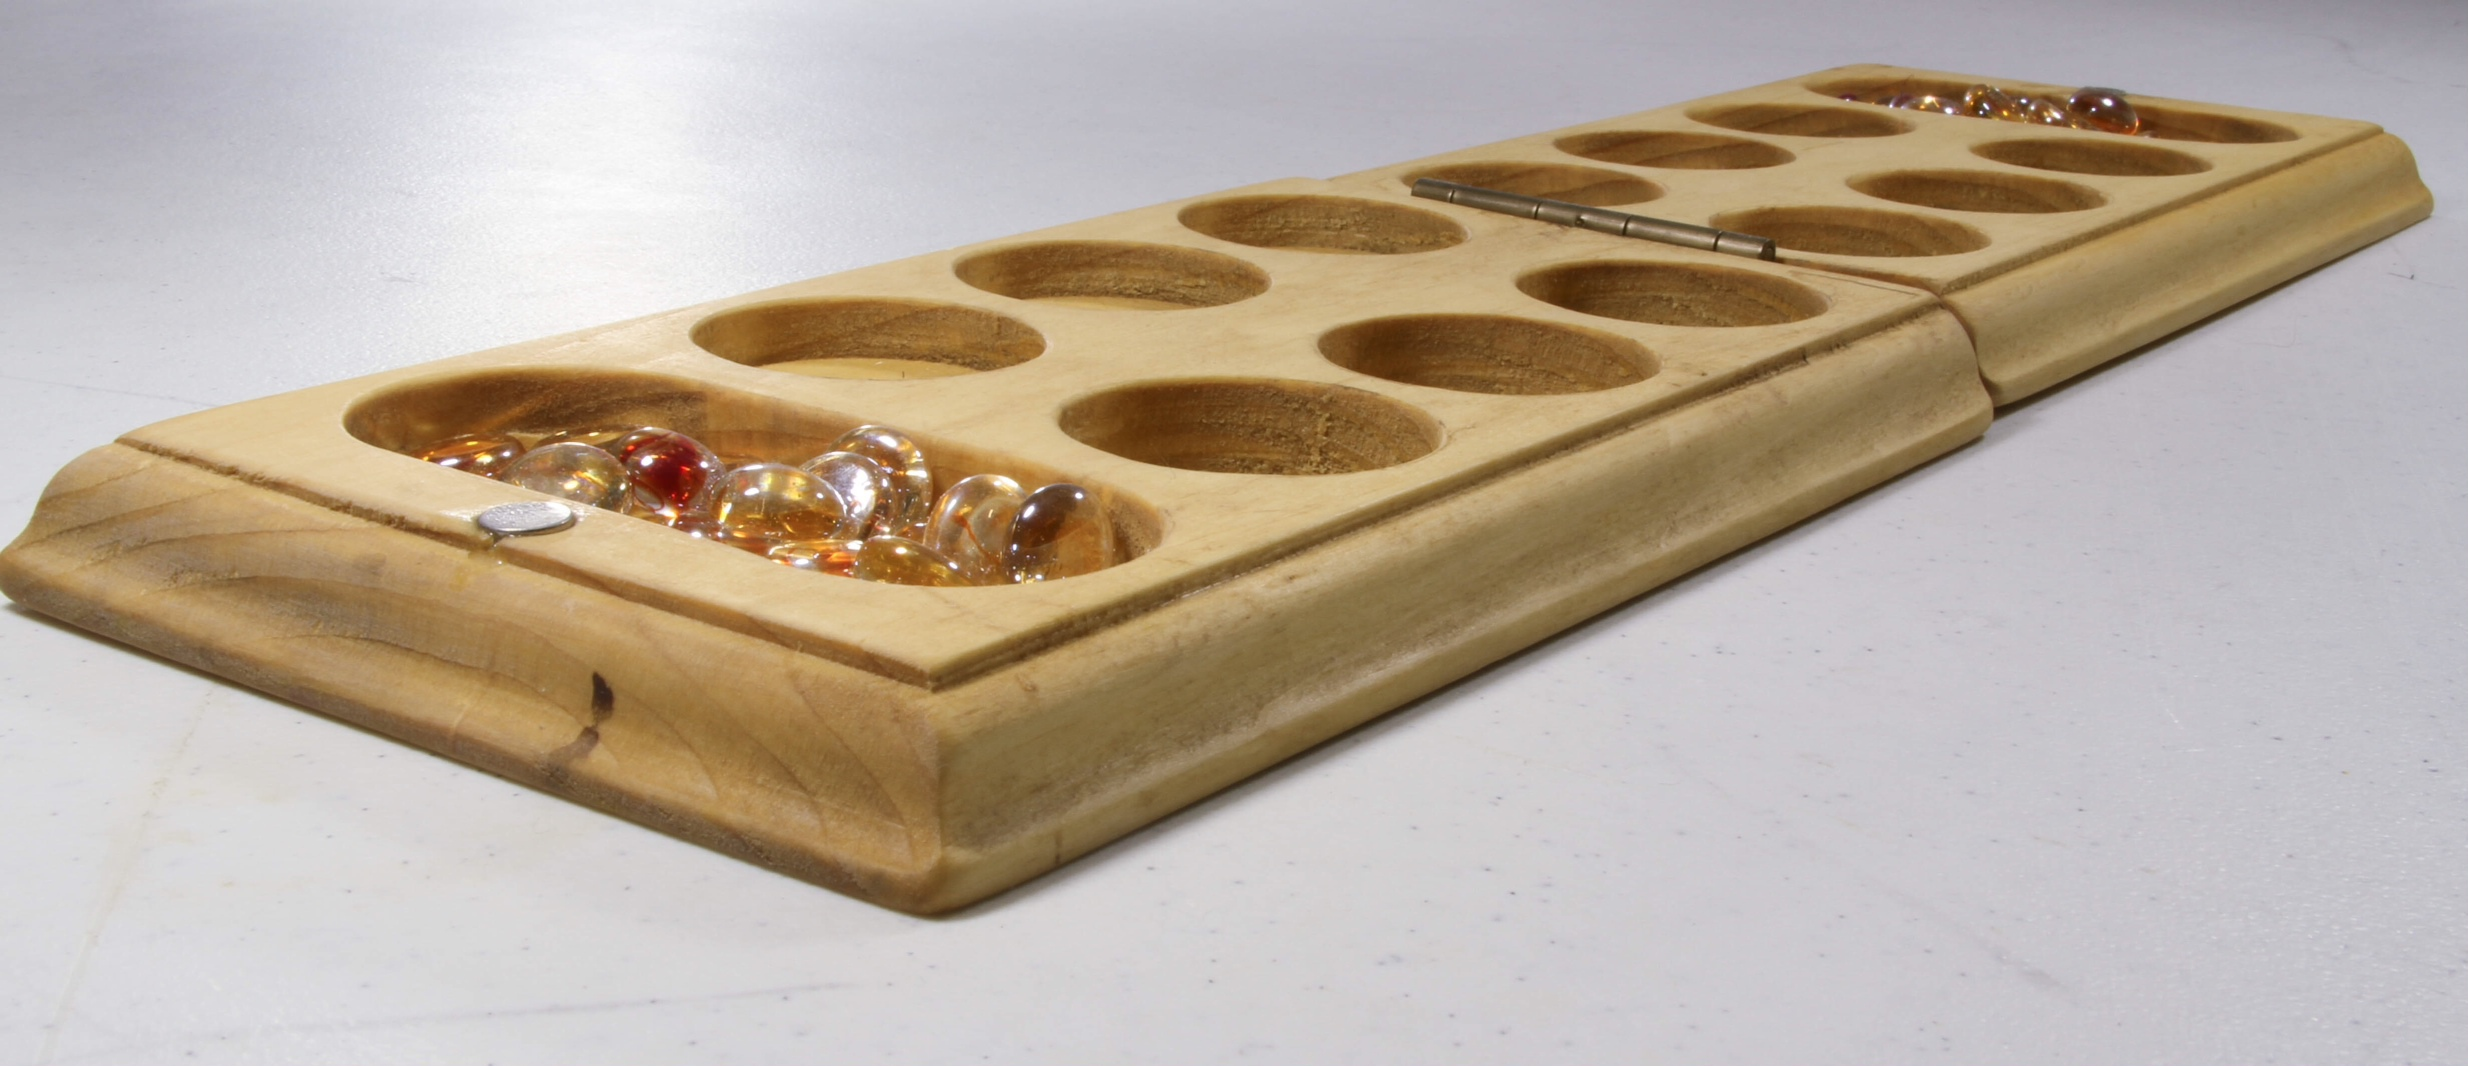 mancala-game-for-miracles-for-mitch.jpg